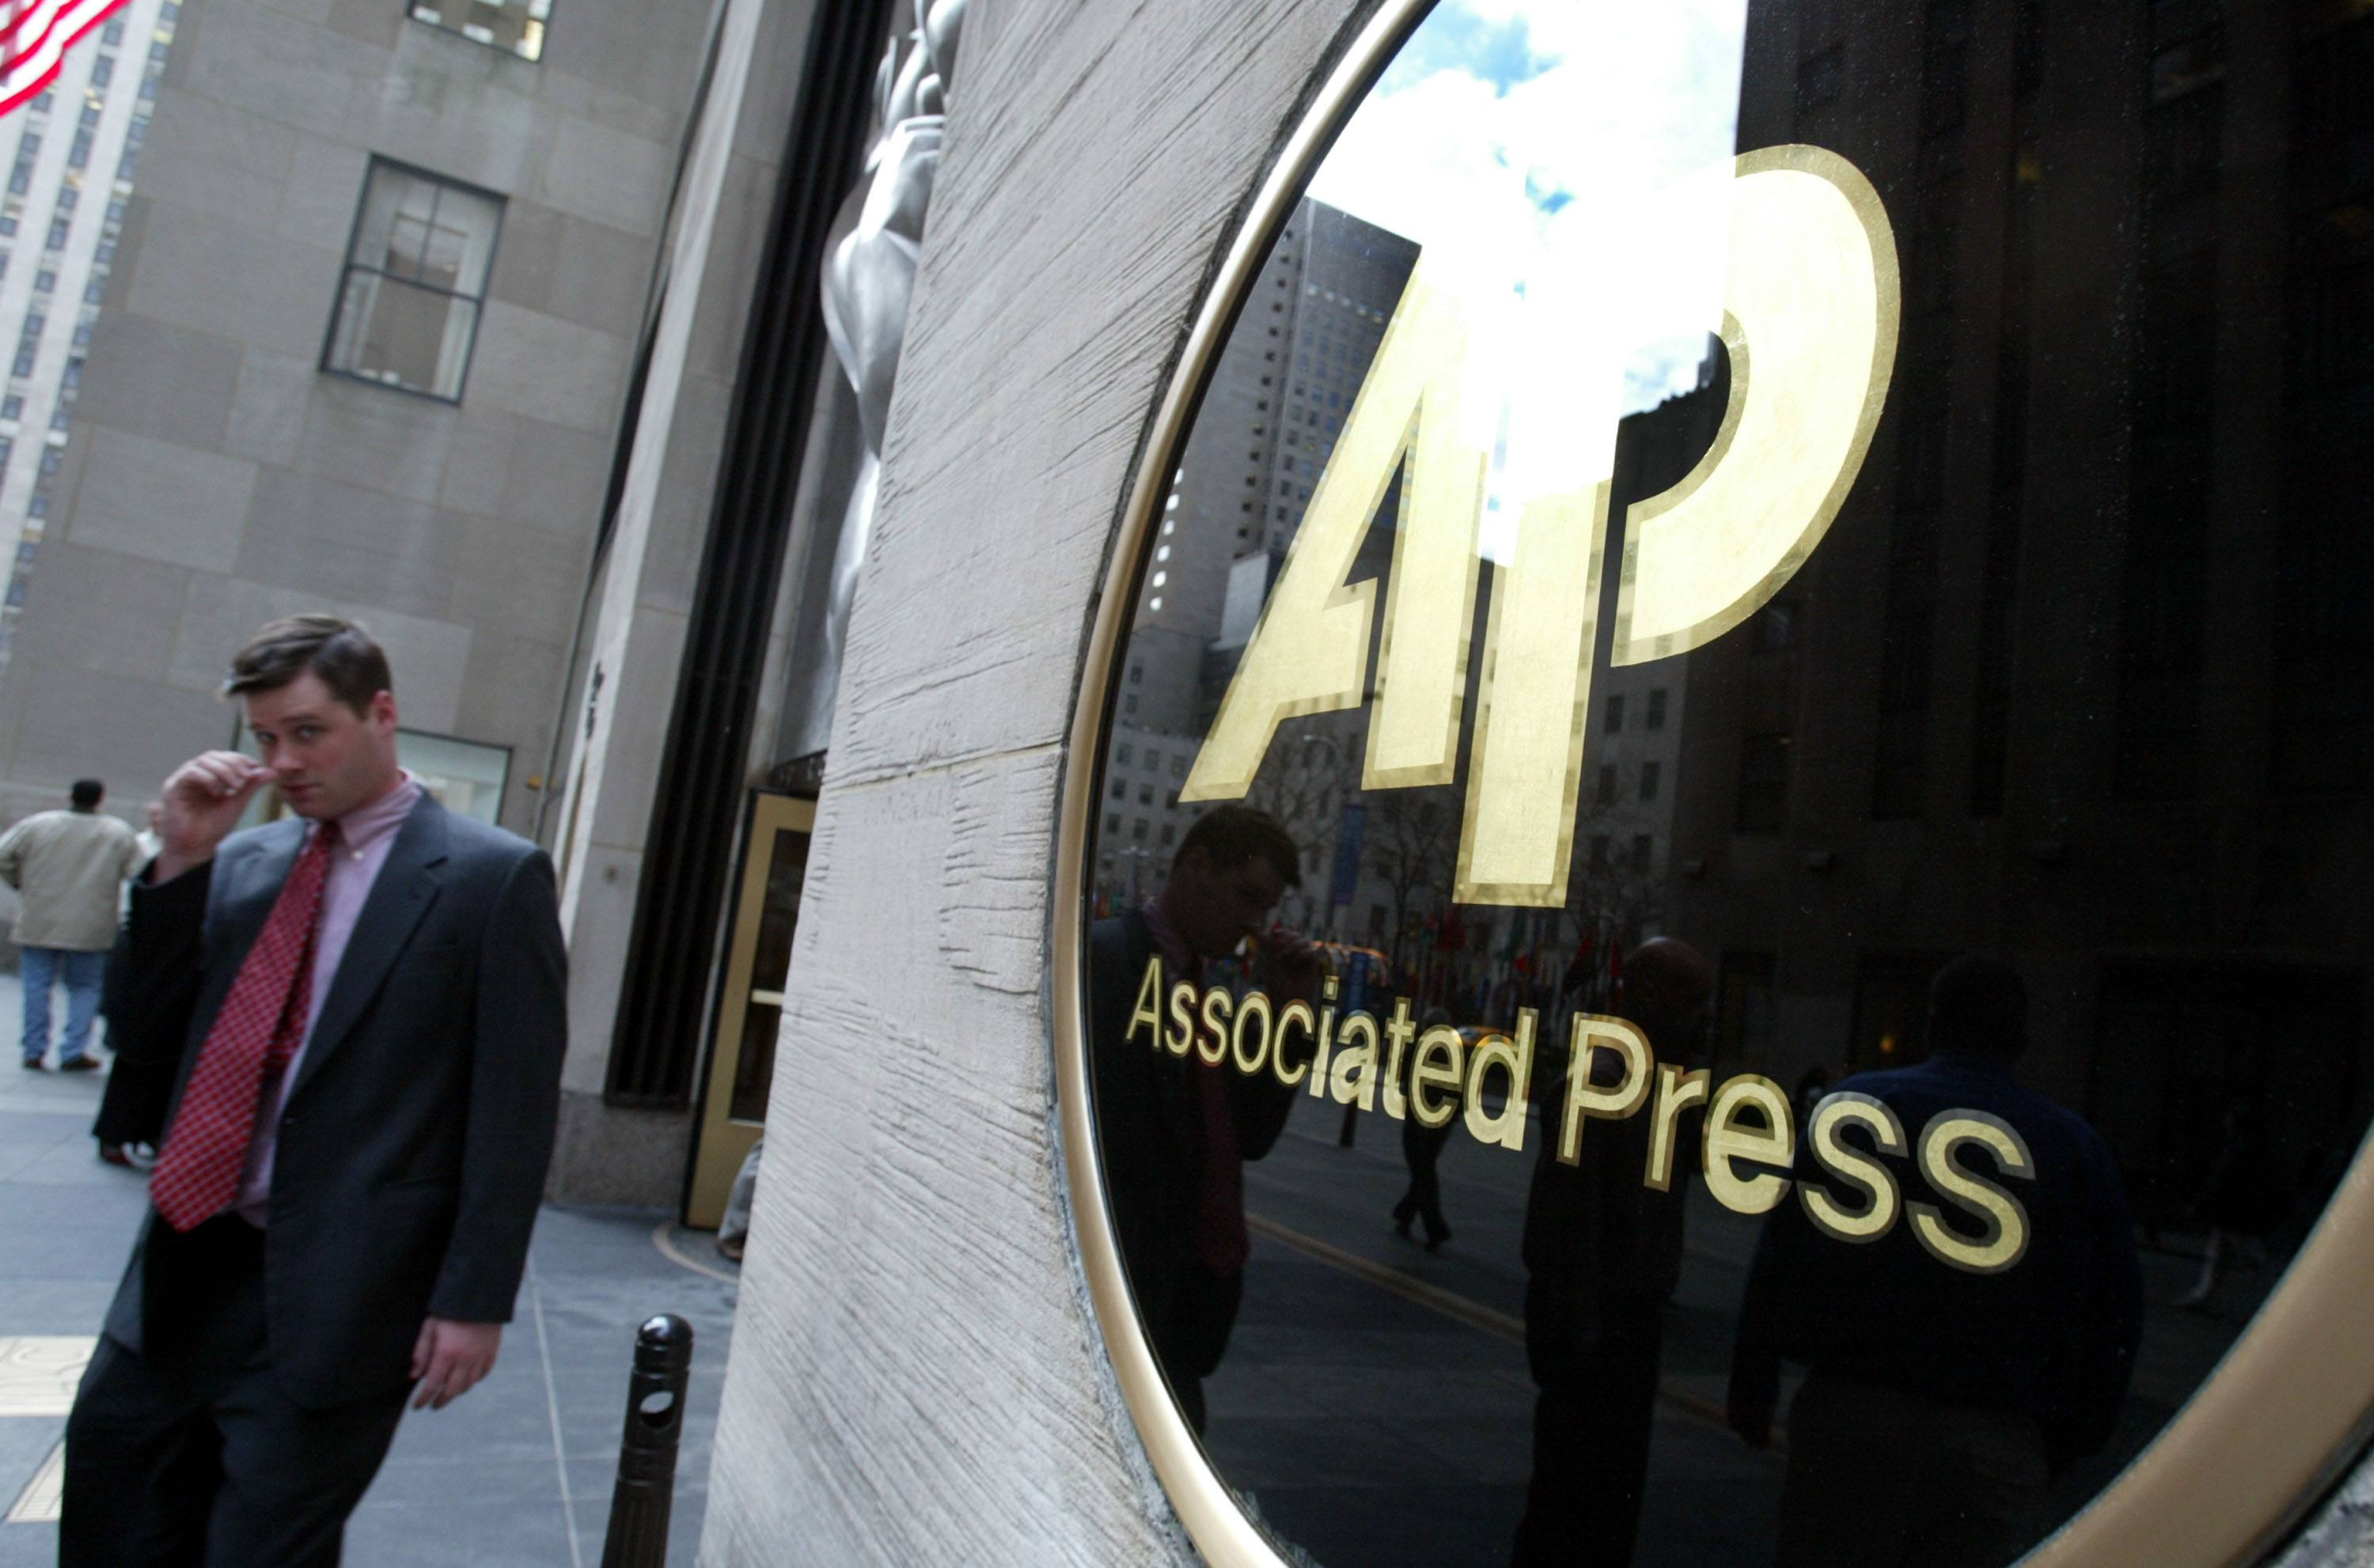 Associated Press logo on building